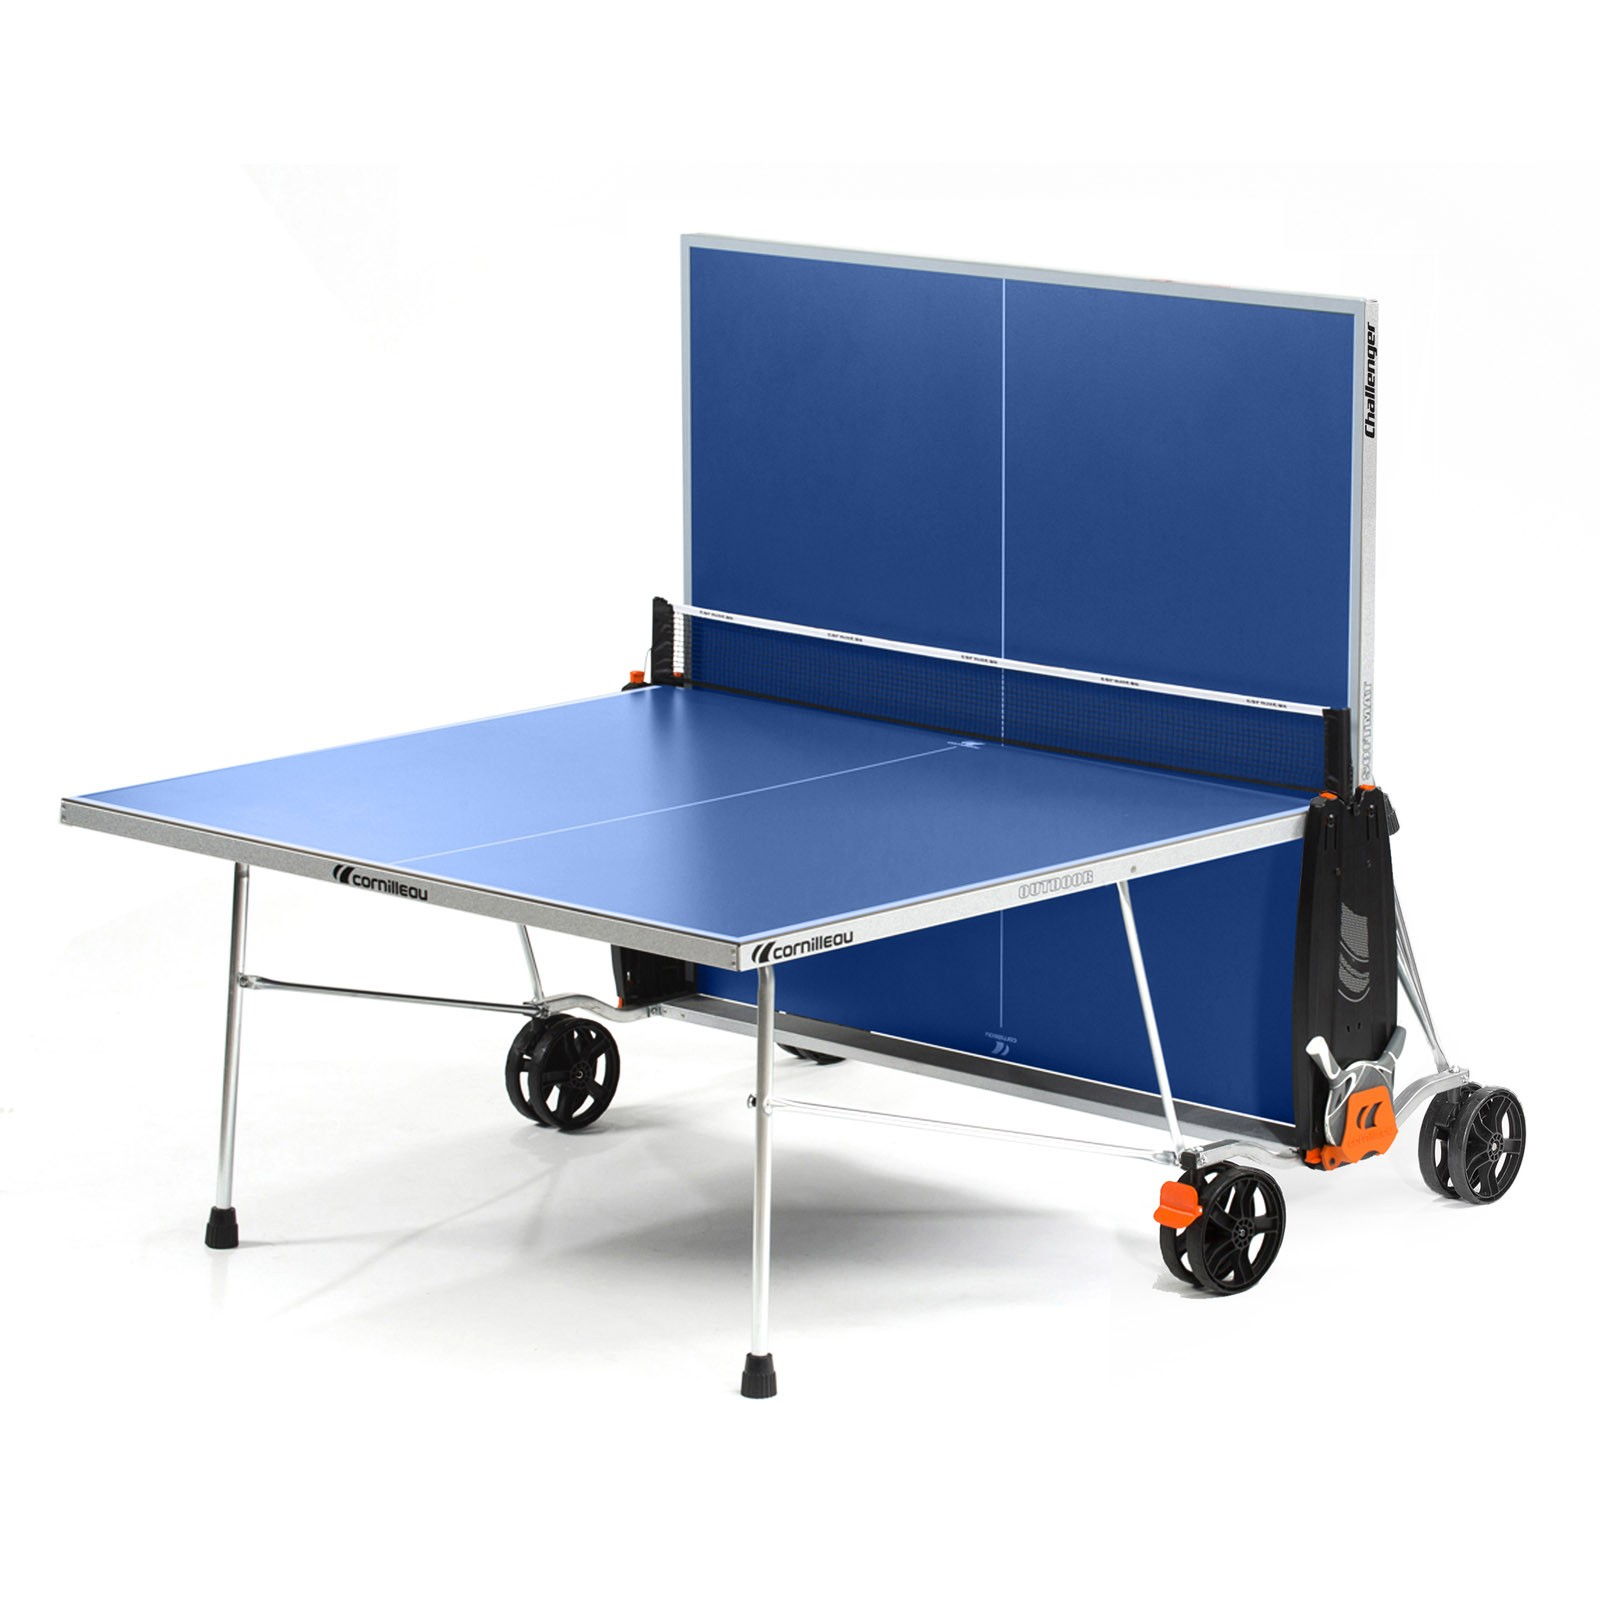 Cornilleau Challenger Outdoor Table Tennis Table - Shop ...